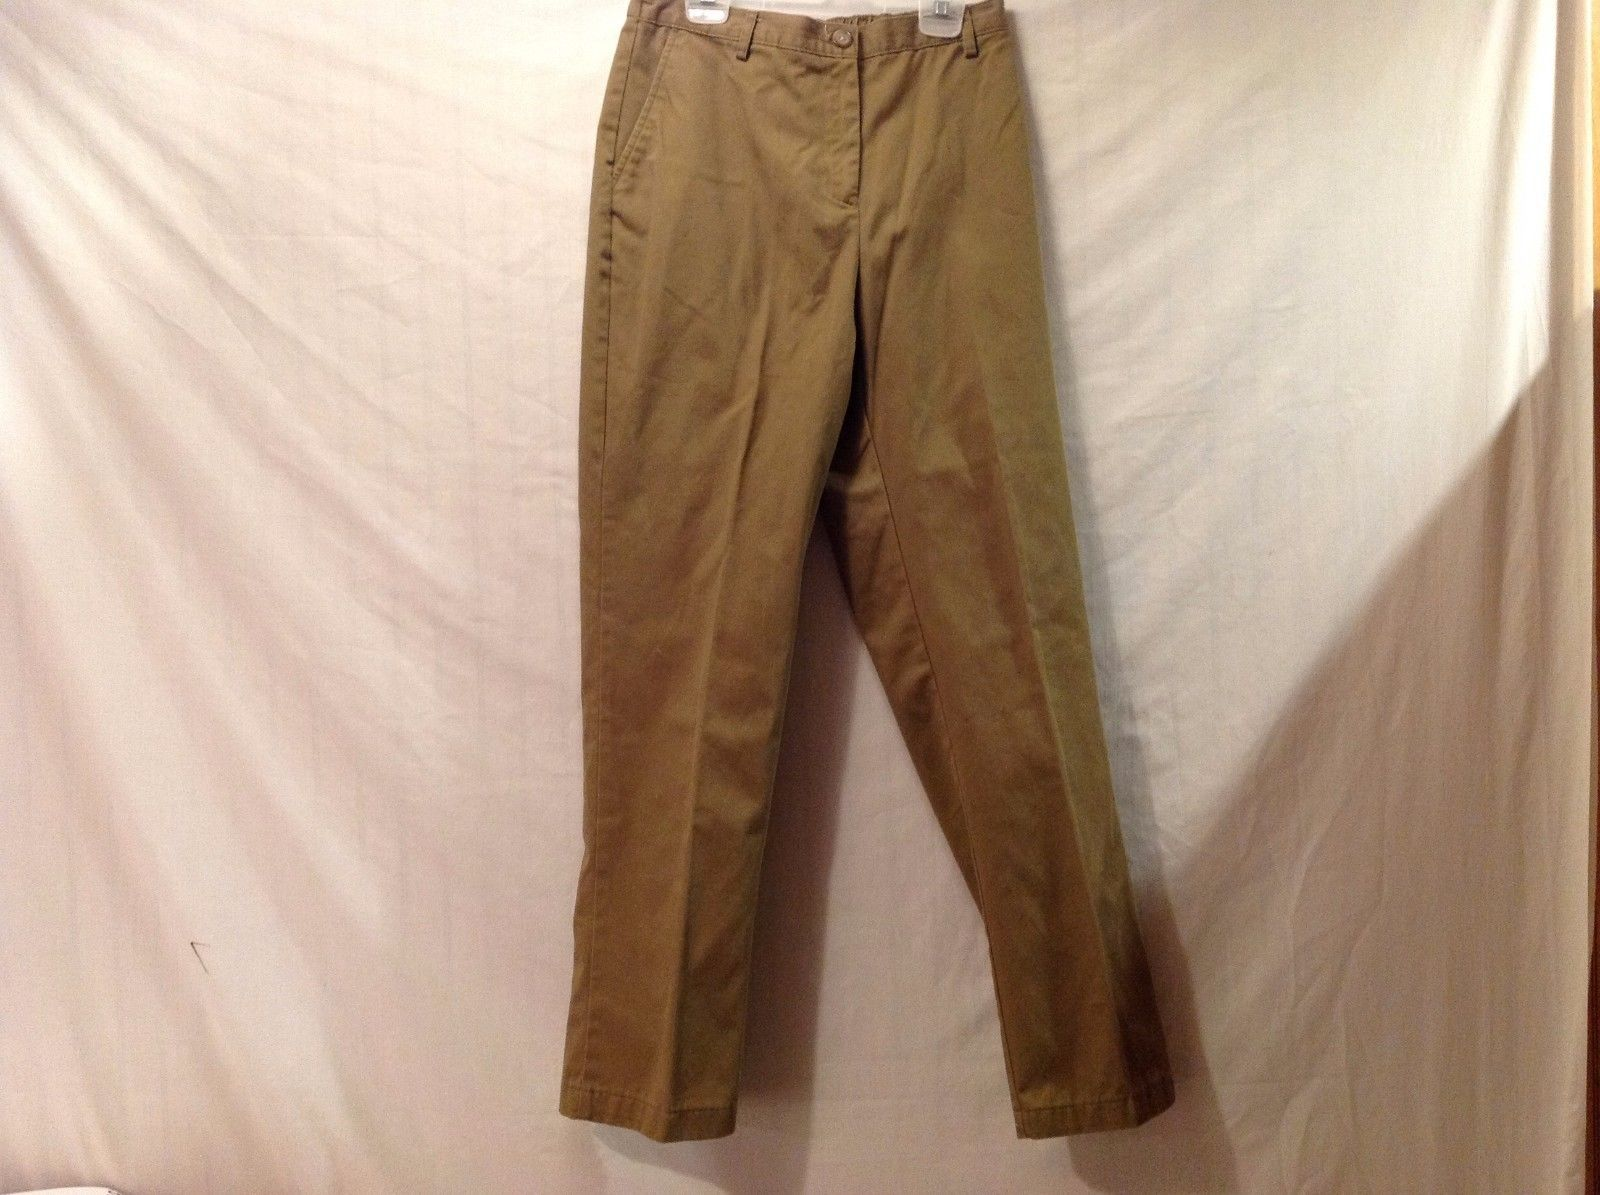 Great Condition Land's End Cotton Blend Dark Tan Elastic Waist Pants 6P